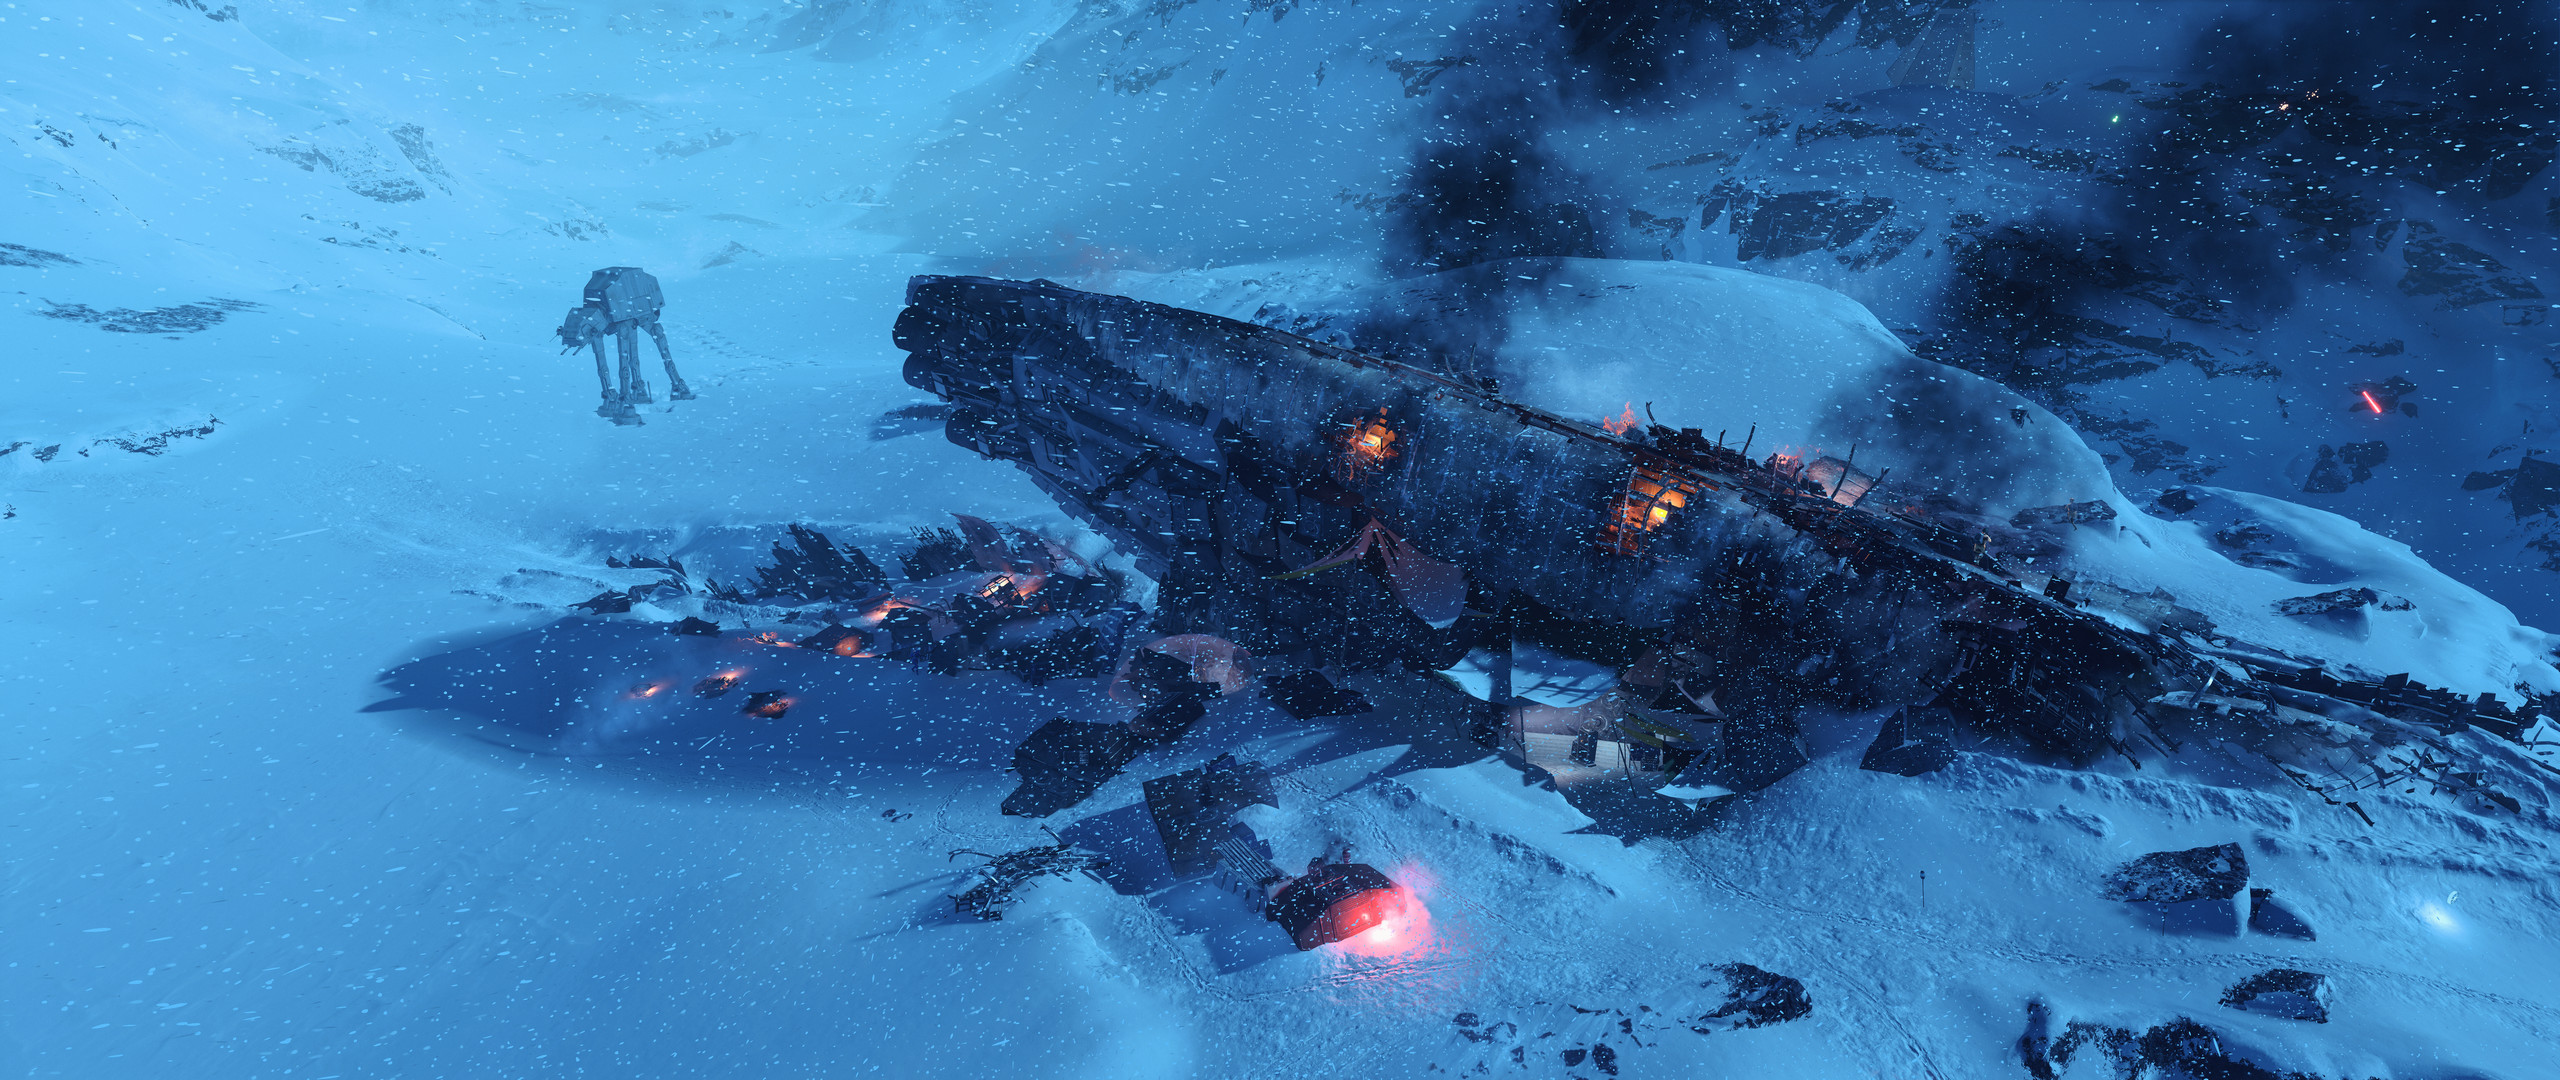 Star Wars Battlefront 2015 Hd Wallpaper Background Image 2560x1080 Id 725385 Wallpaper Abyss